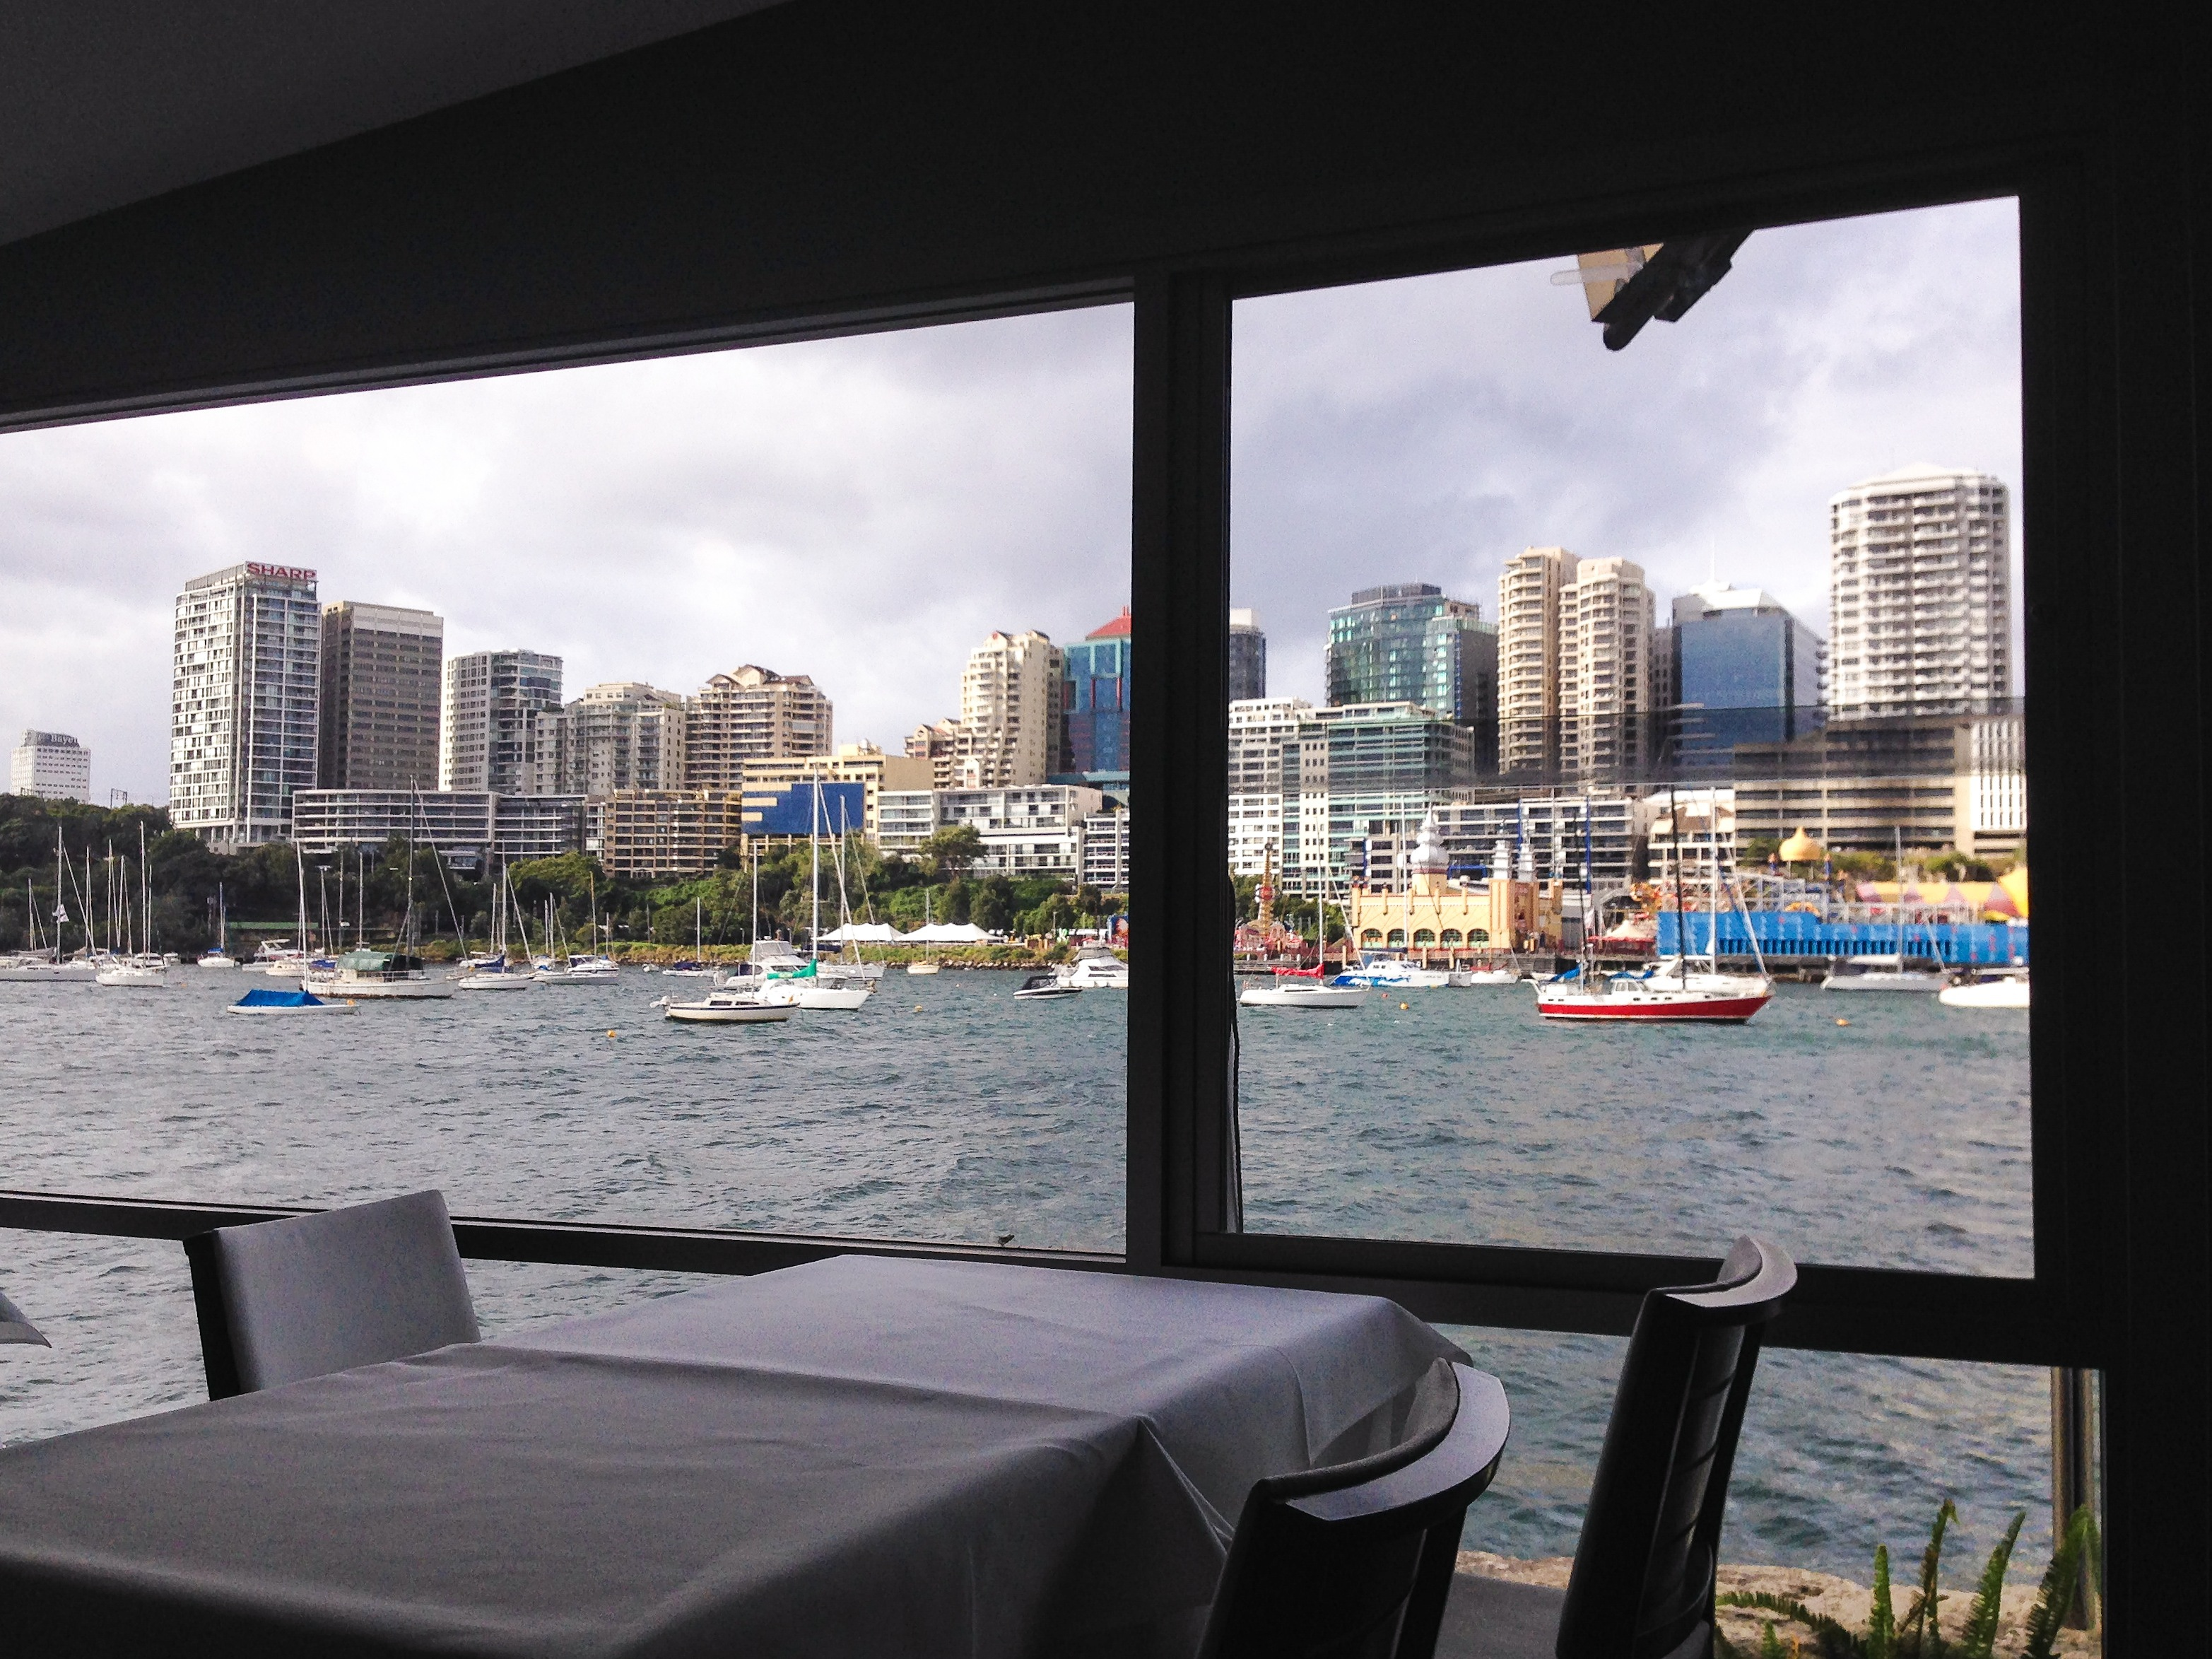 water view restaurants sydney harbour - photo#29